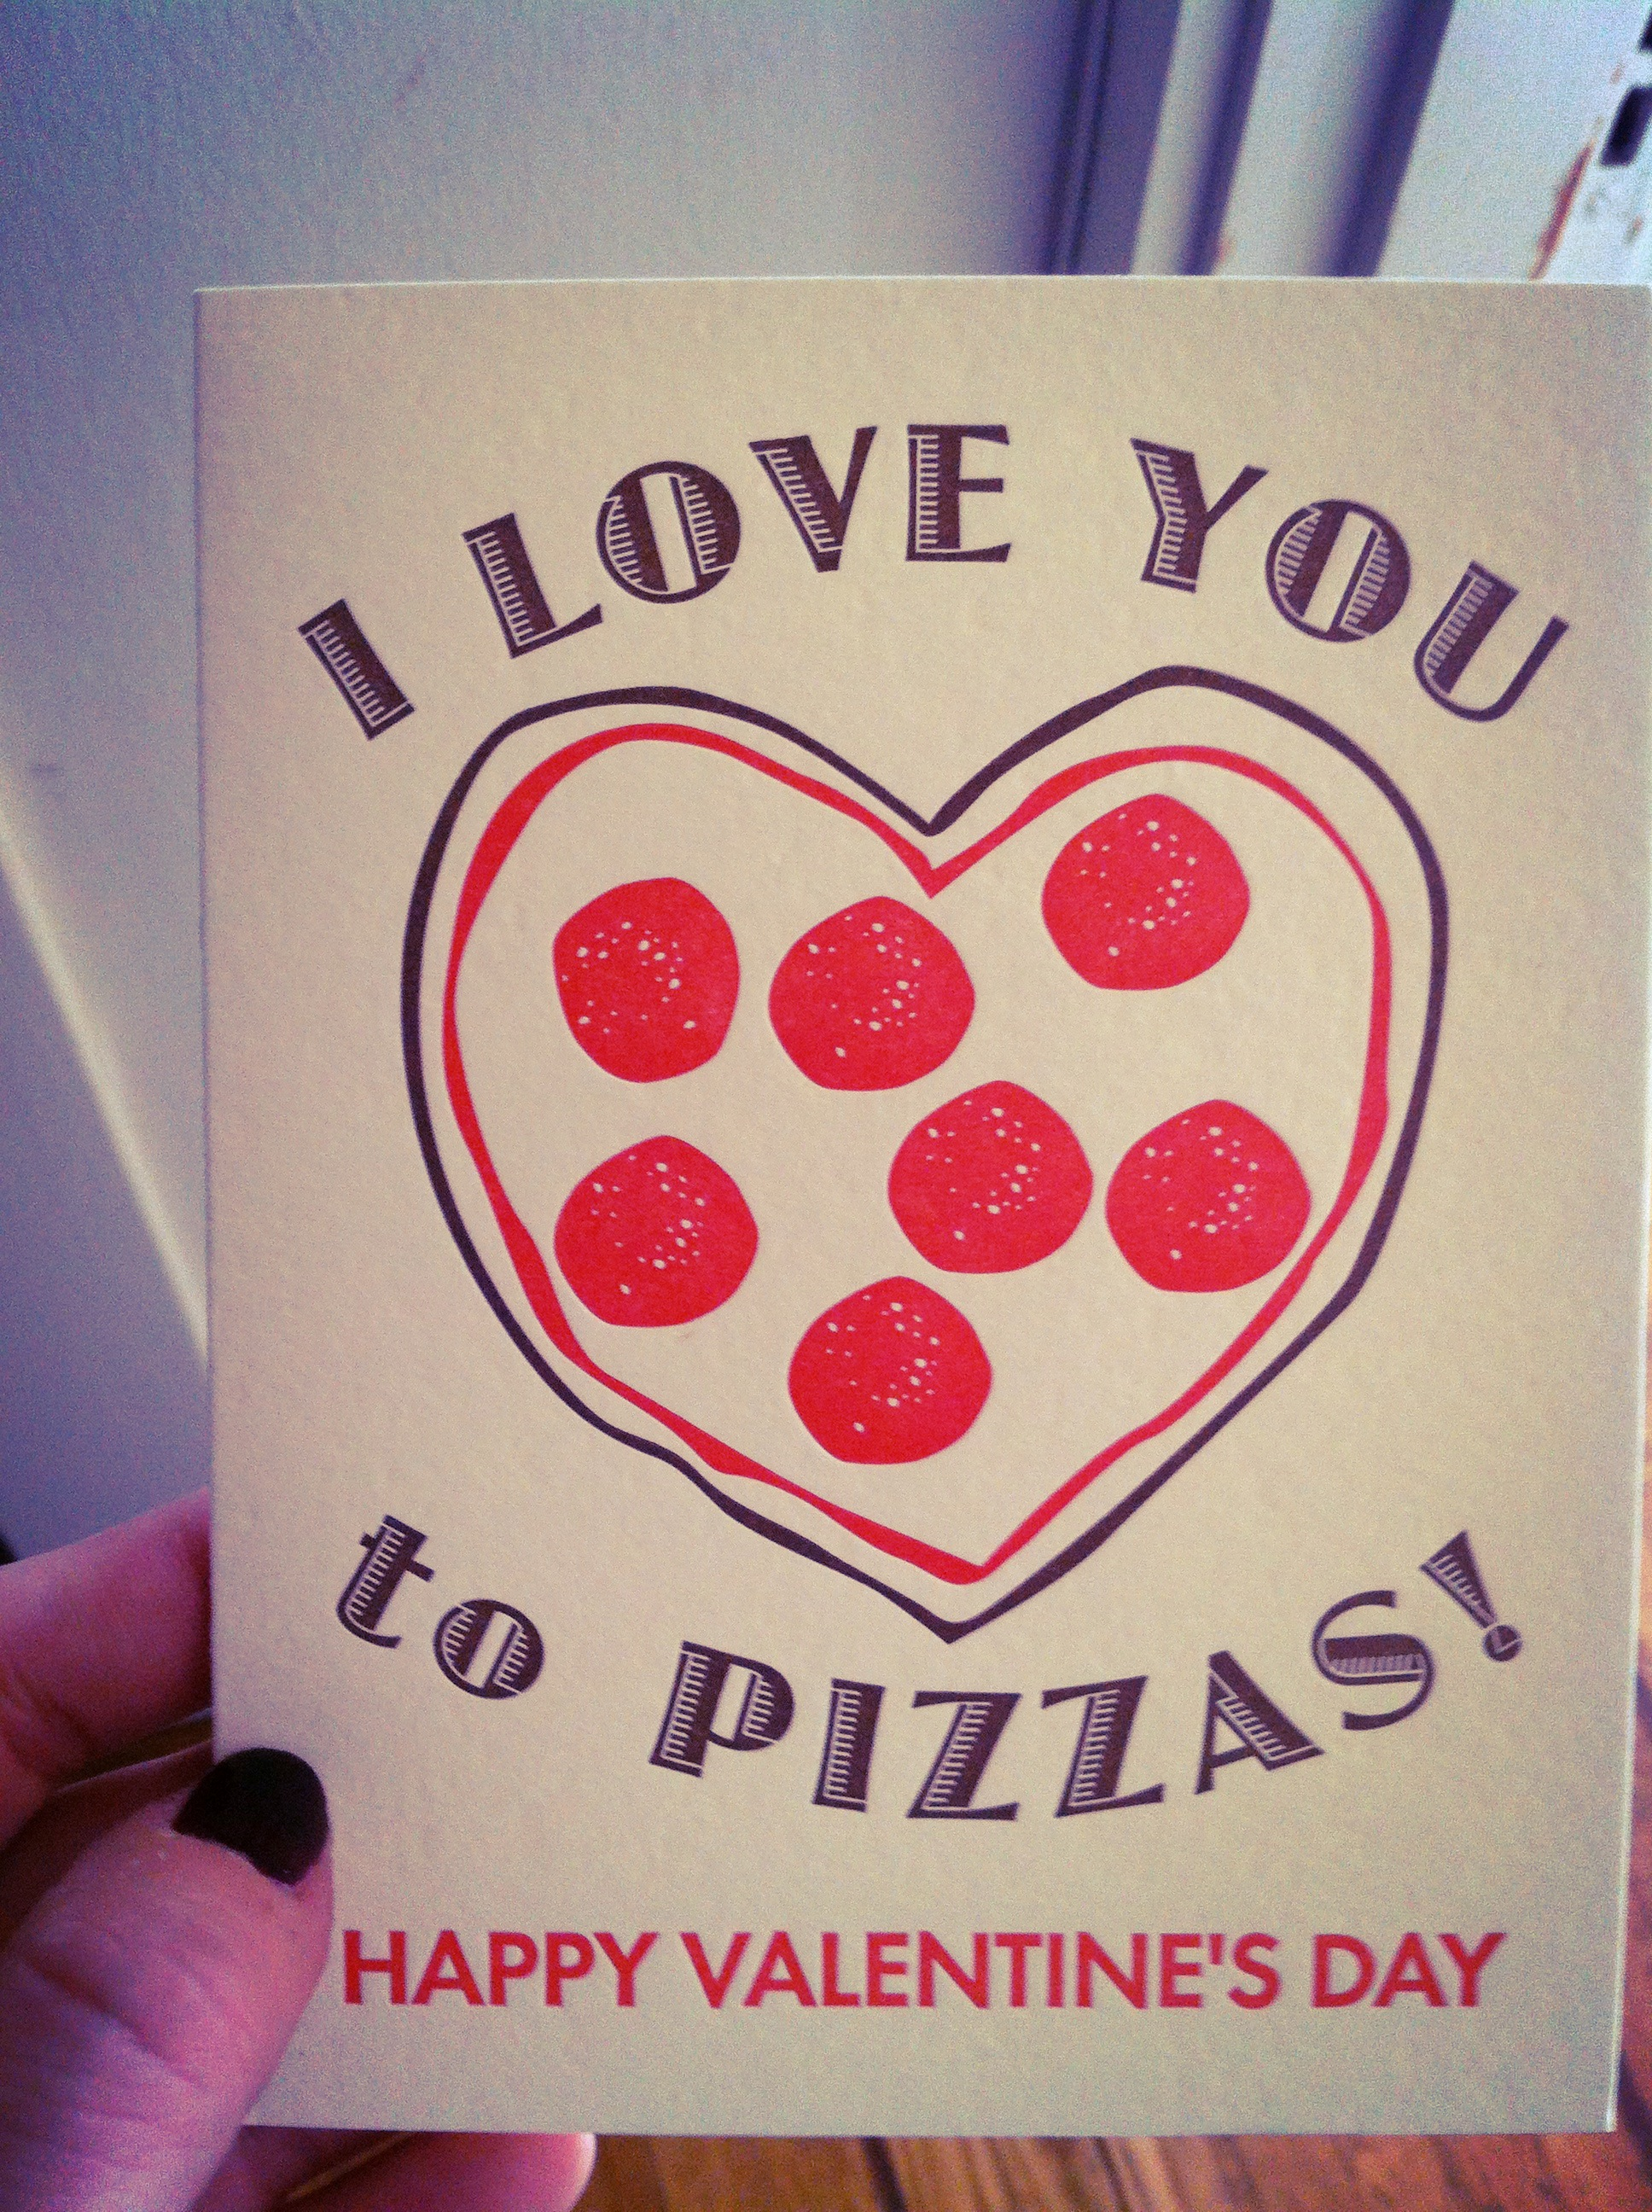 A Valentine's Day Card from my lurdy Emily!